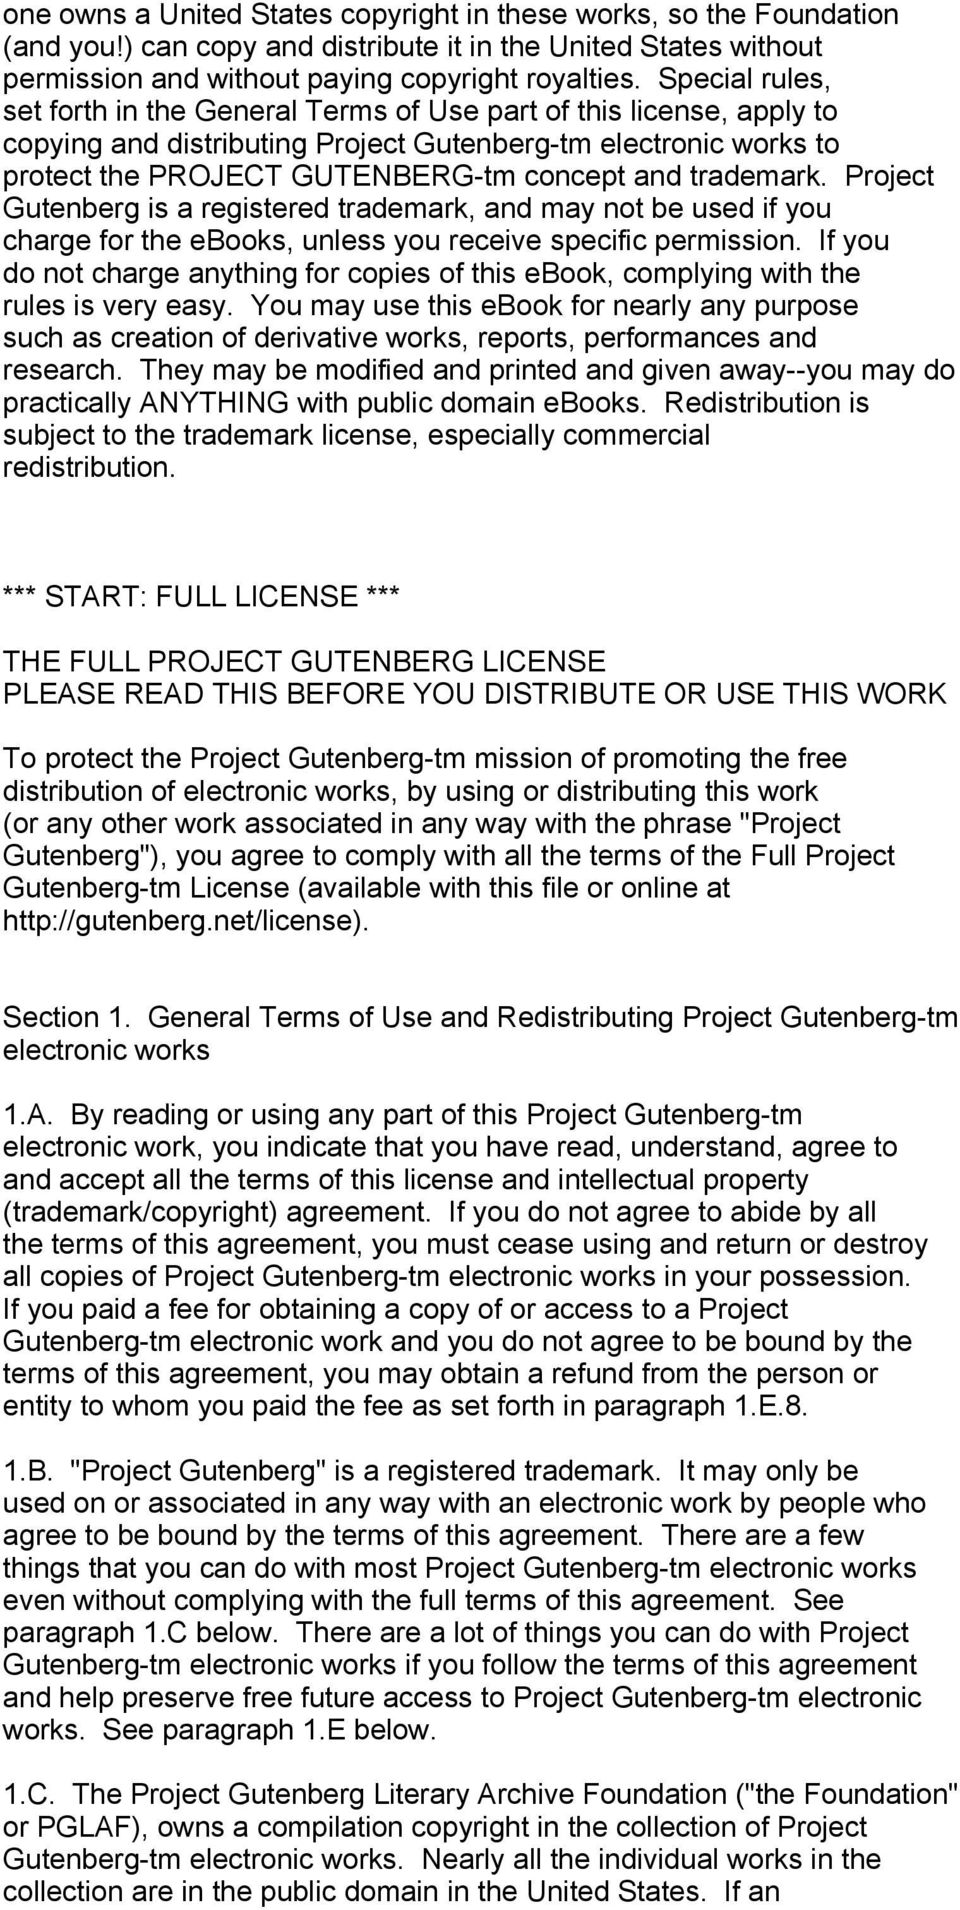 trademark. Project Gutenberg is a registered trademark, and may not be used if you charge for the ebooks, unless you receive specific permission.